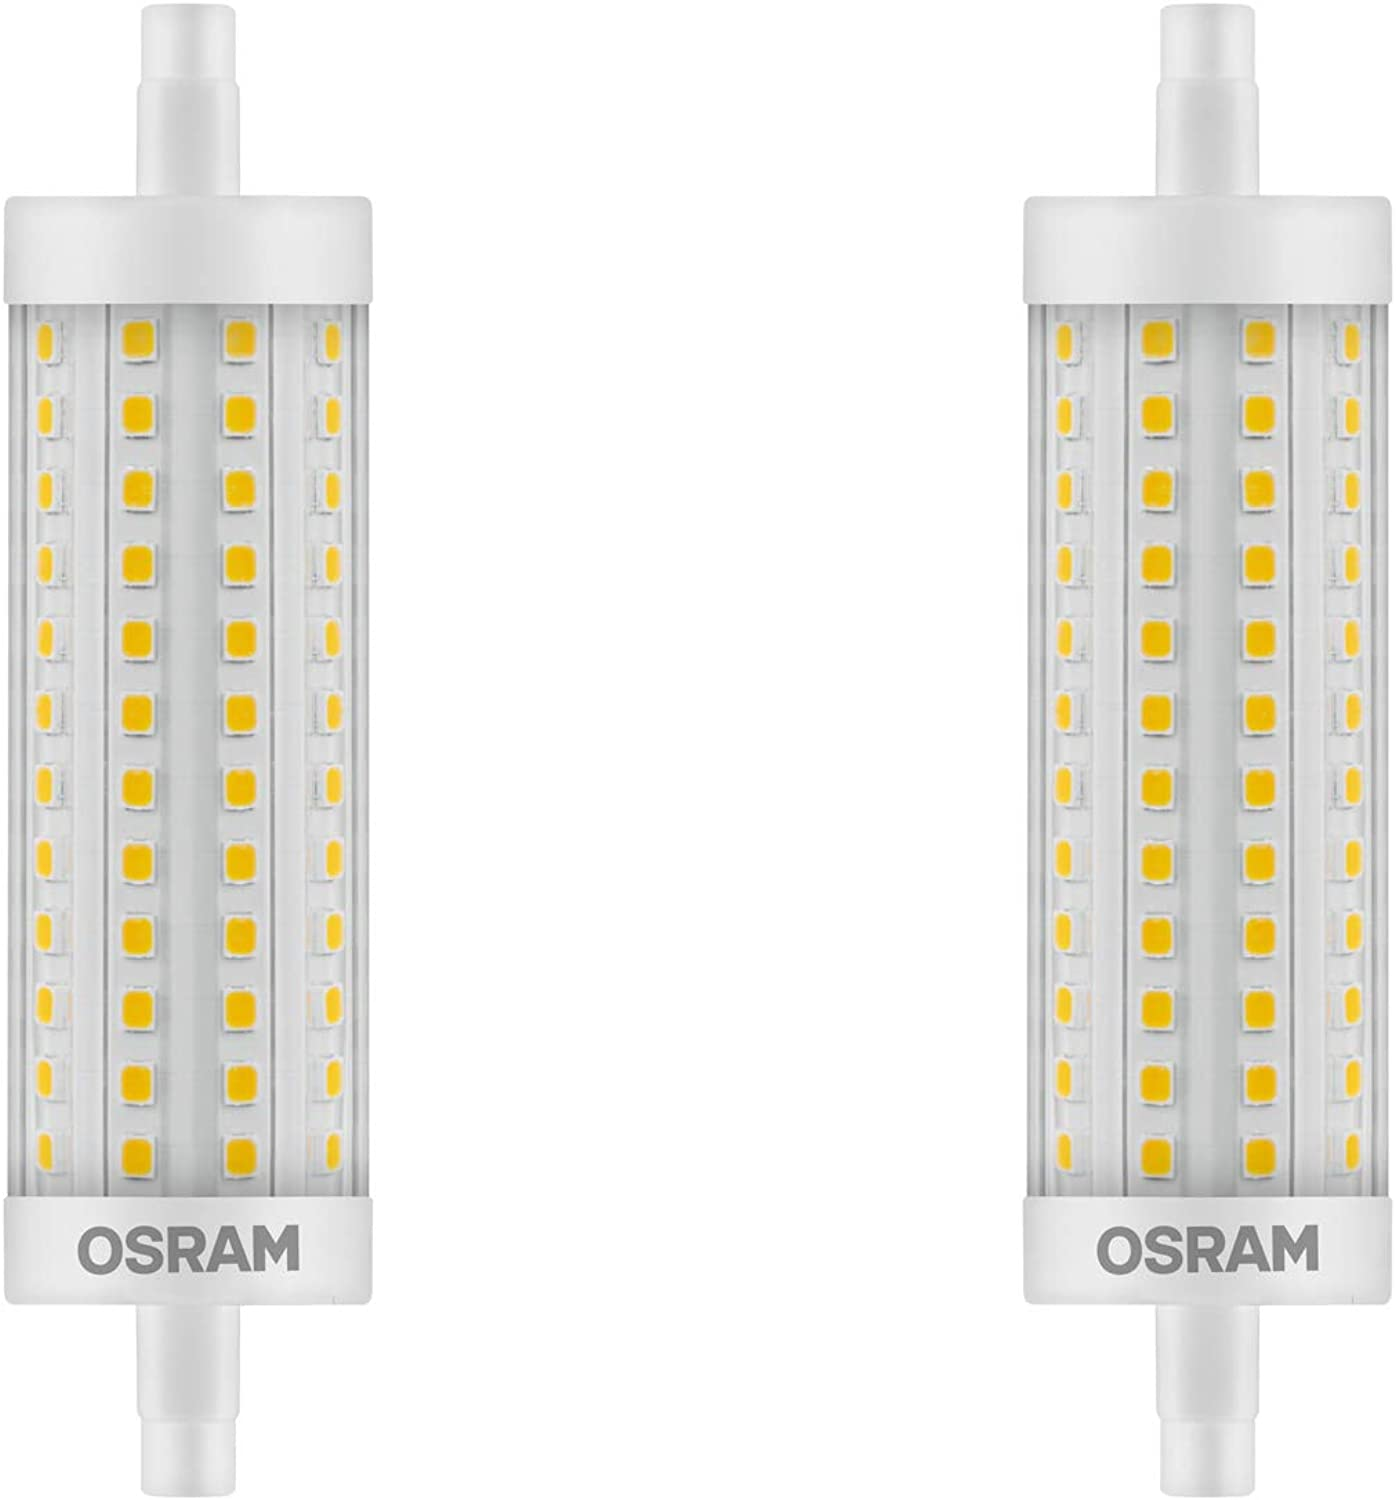 OSRAM LED SUPERSTAR LINE 118 R7s 17,5W=150W 2452lm warm Weiß 2700K dimmable 2er